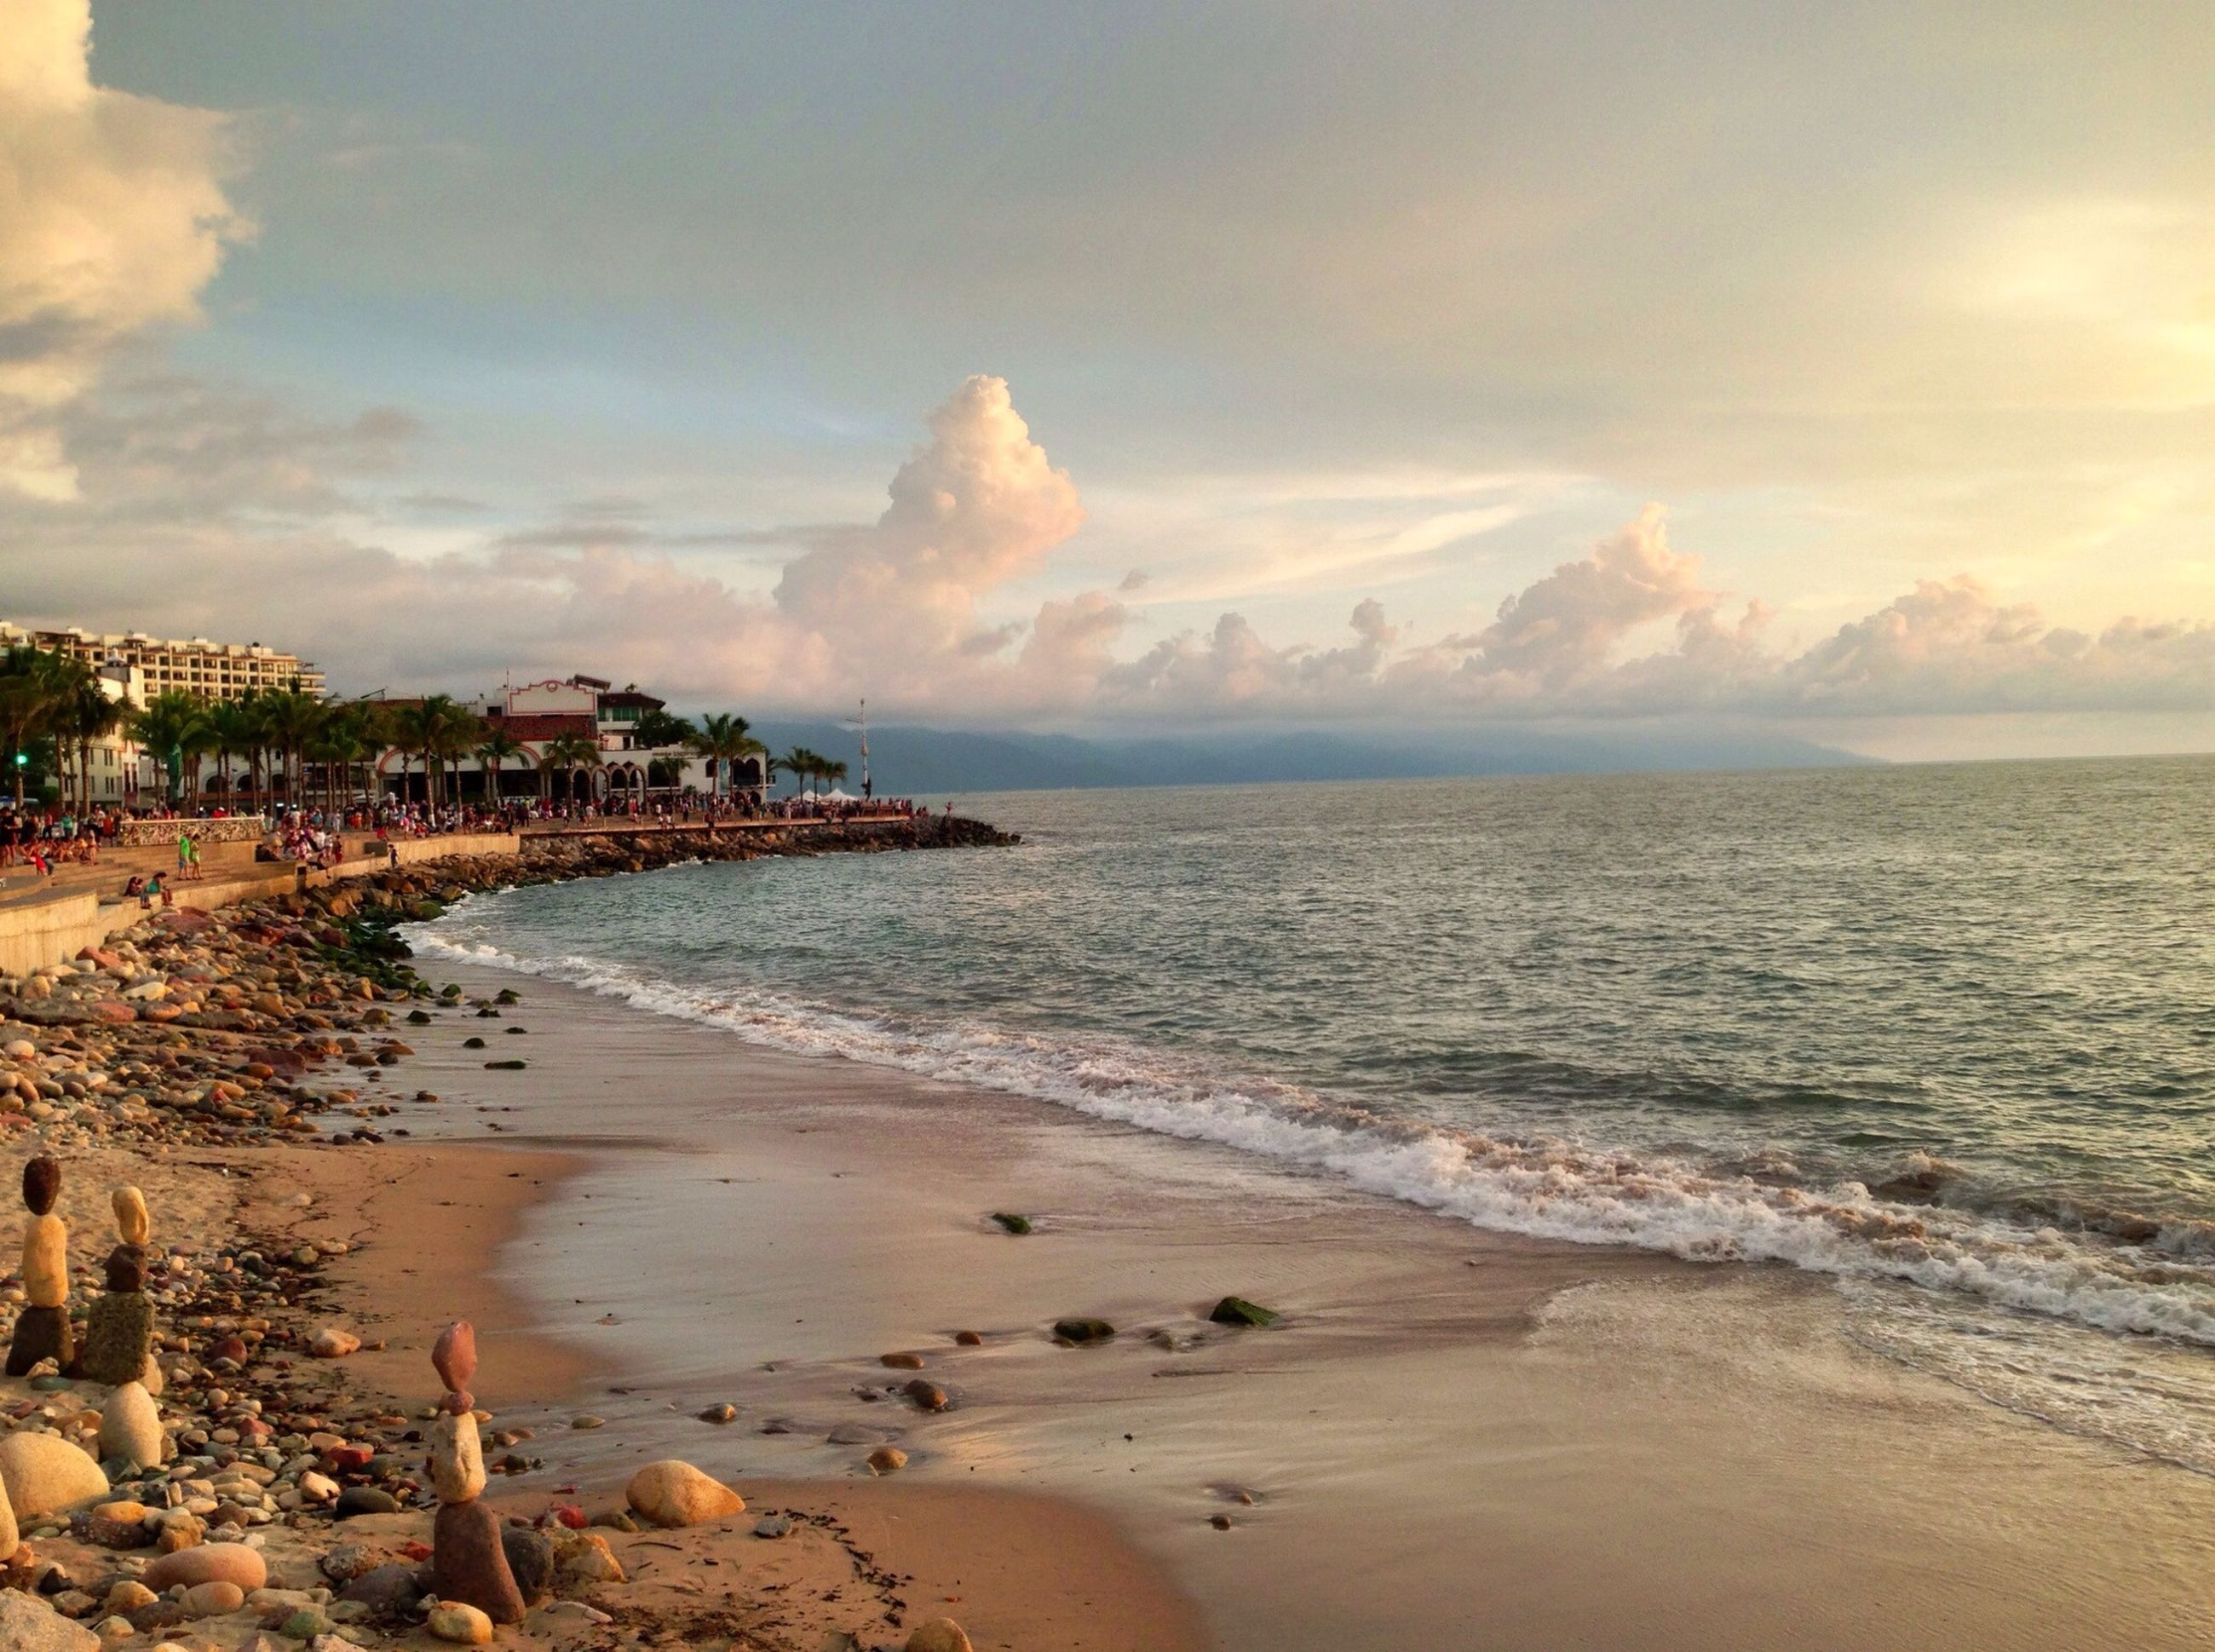 beach, sea, water, sand, shore, sky, horizon over water, scenics, tranquil scene, beauty in nature, tranquility, coastline, nature, cloud - sky, wave, surf, idyllic, incidental people, cloud, vacations